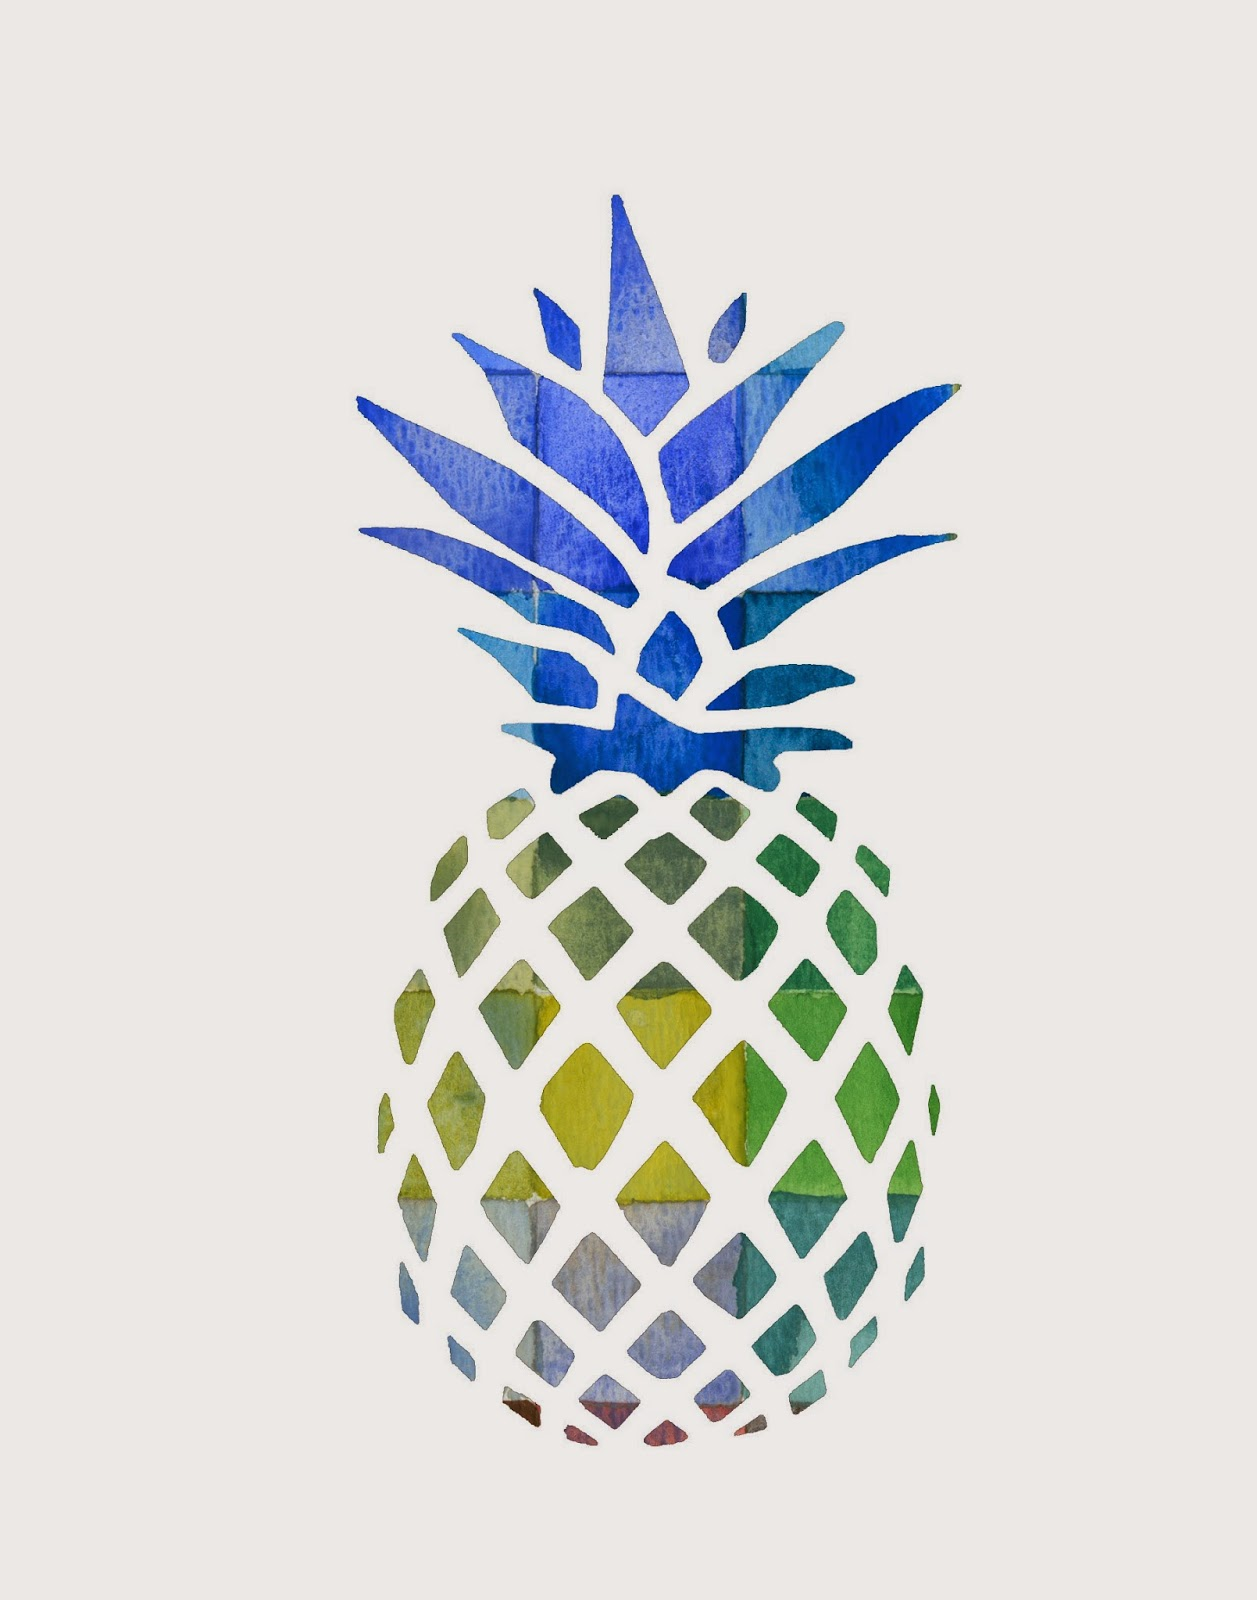 photo about Printable Pineapple named Pineapple Printables for Your Following Task! - The Weathered Fox